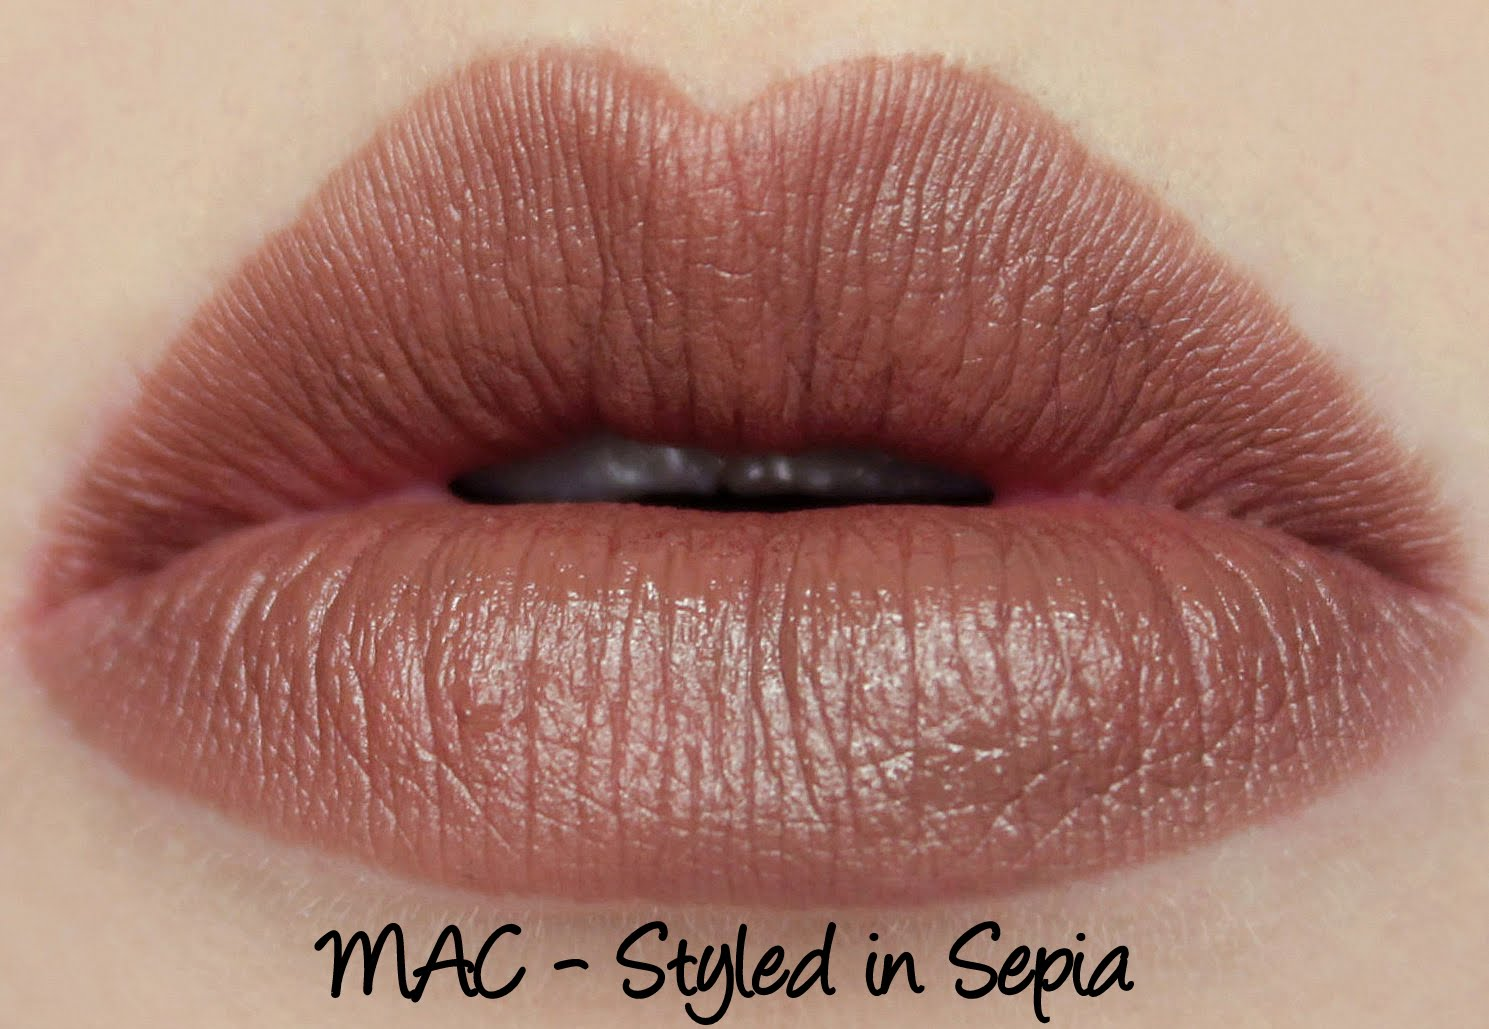 MAC Styled in Sepia Lipstick Swatches & Review